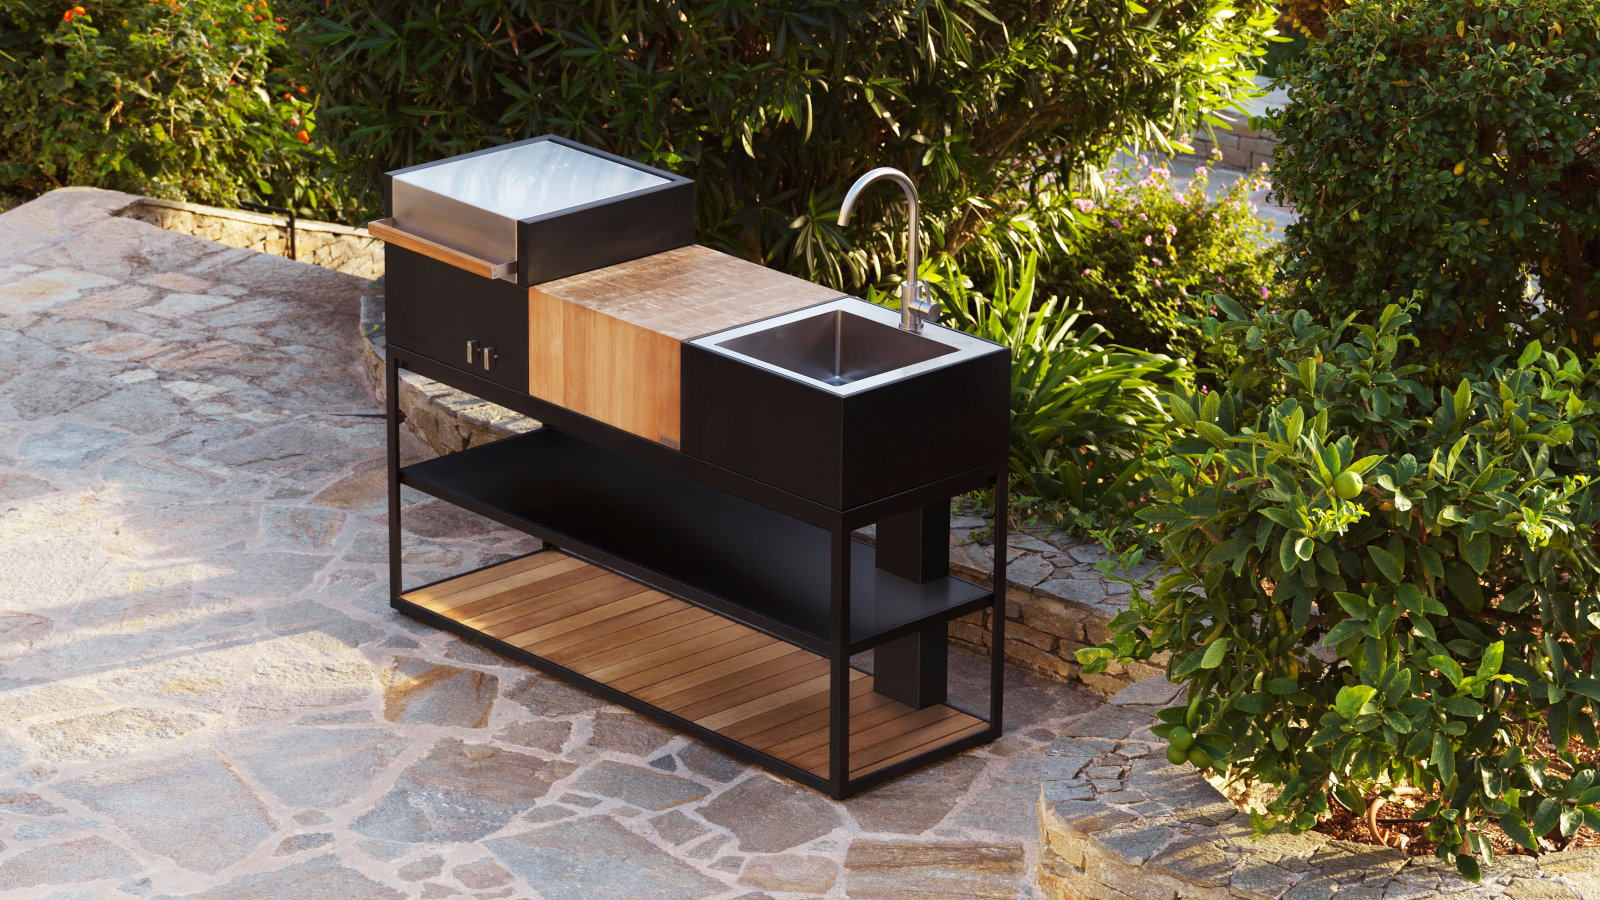 Outdoorküche Mit Gasgrill : Designer outdoor küche open kitchen von röshults